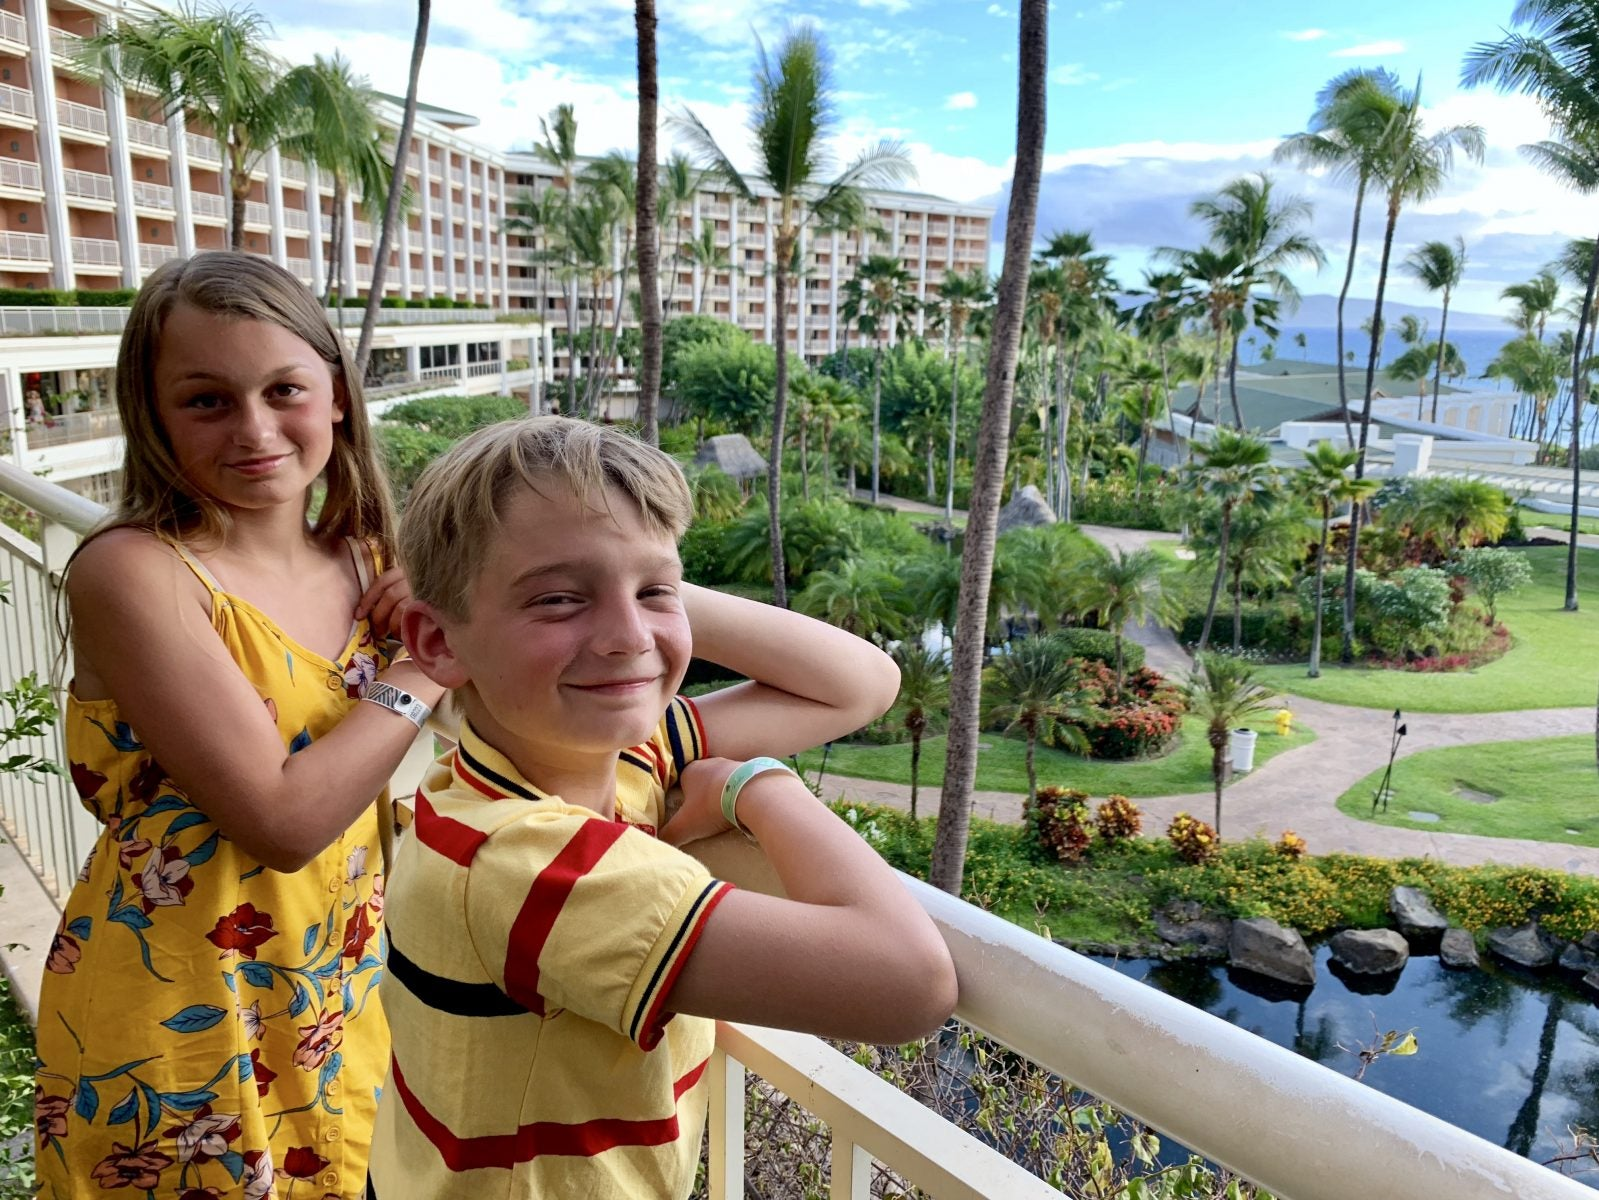 5 Best Hotels for Families You Can Book With Hilton Points — Use the Hilton Card Limited-Time Offers